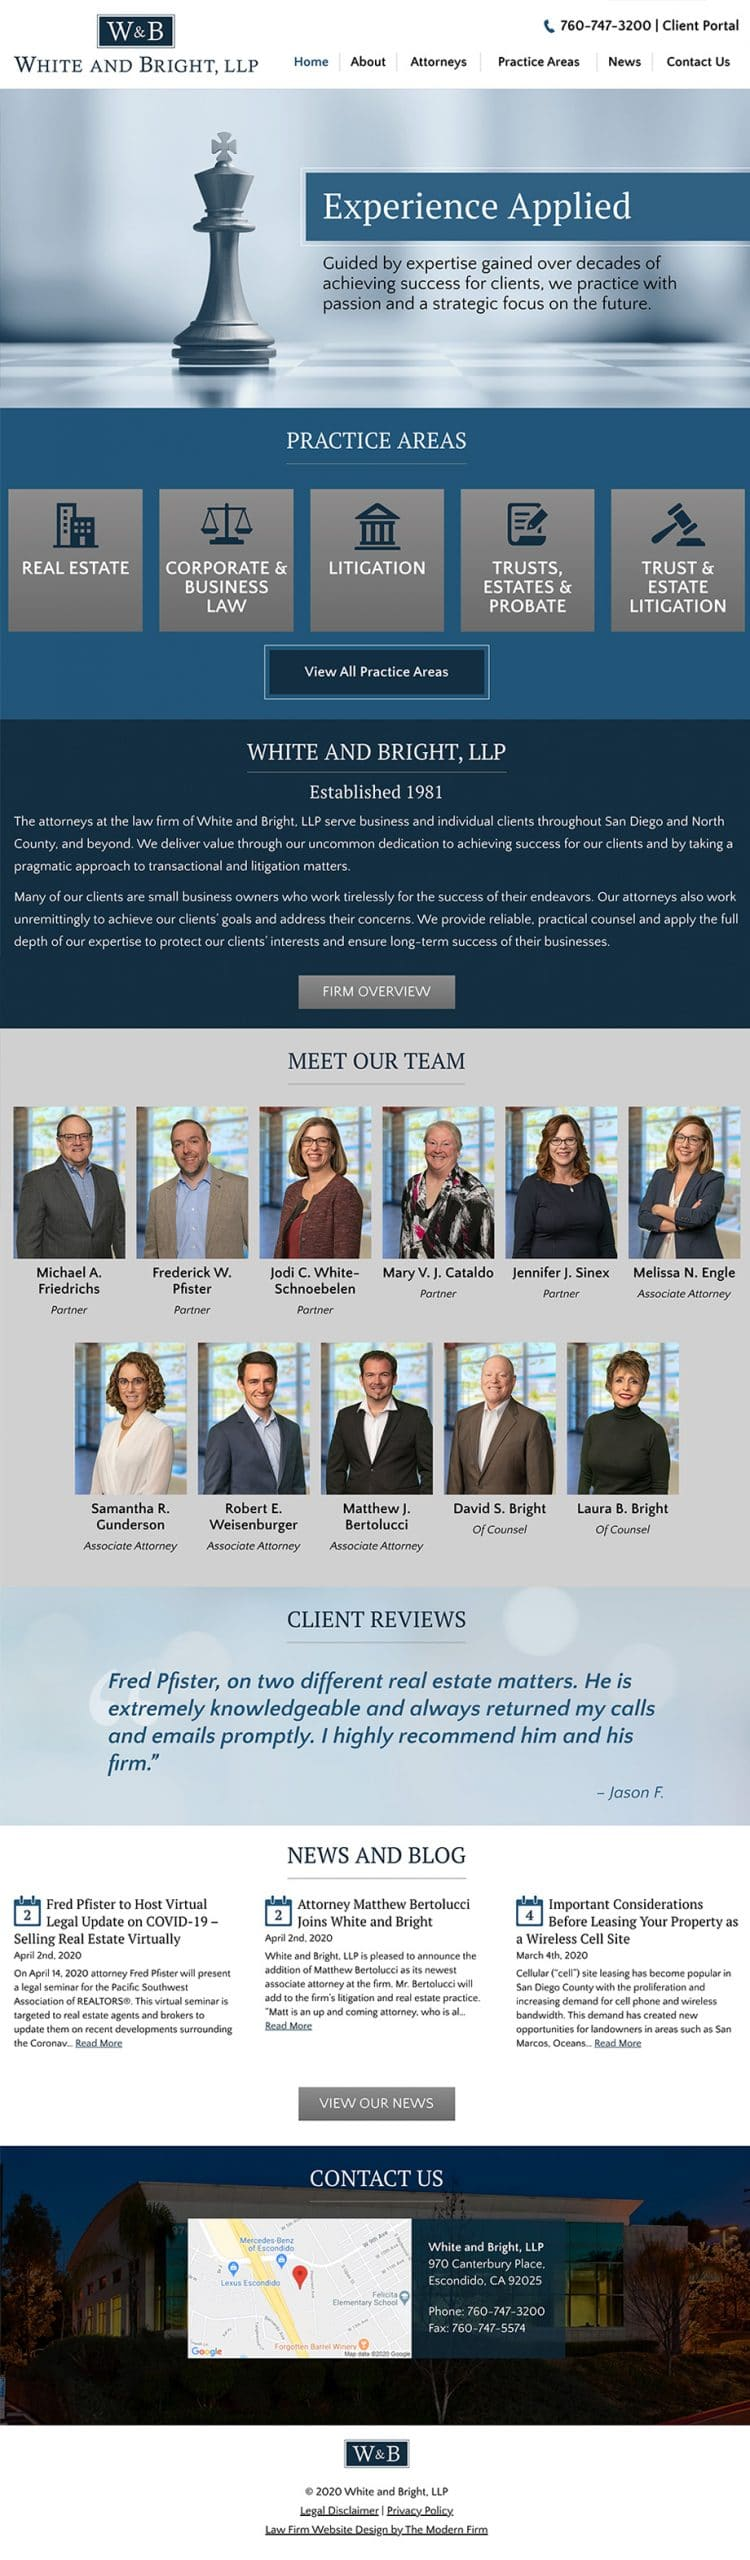 Law Firm Website Design for White and Bright, LLP